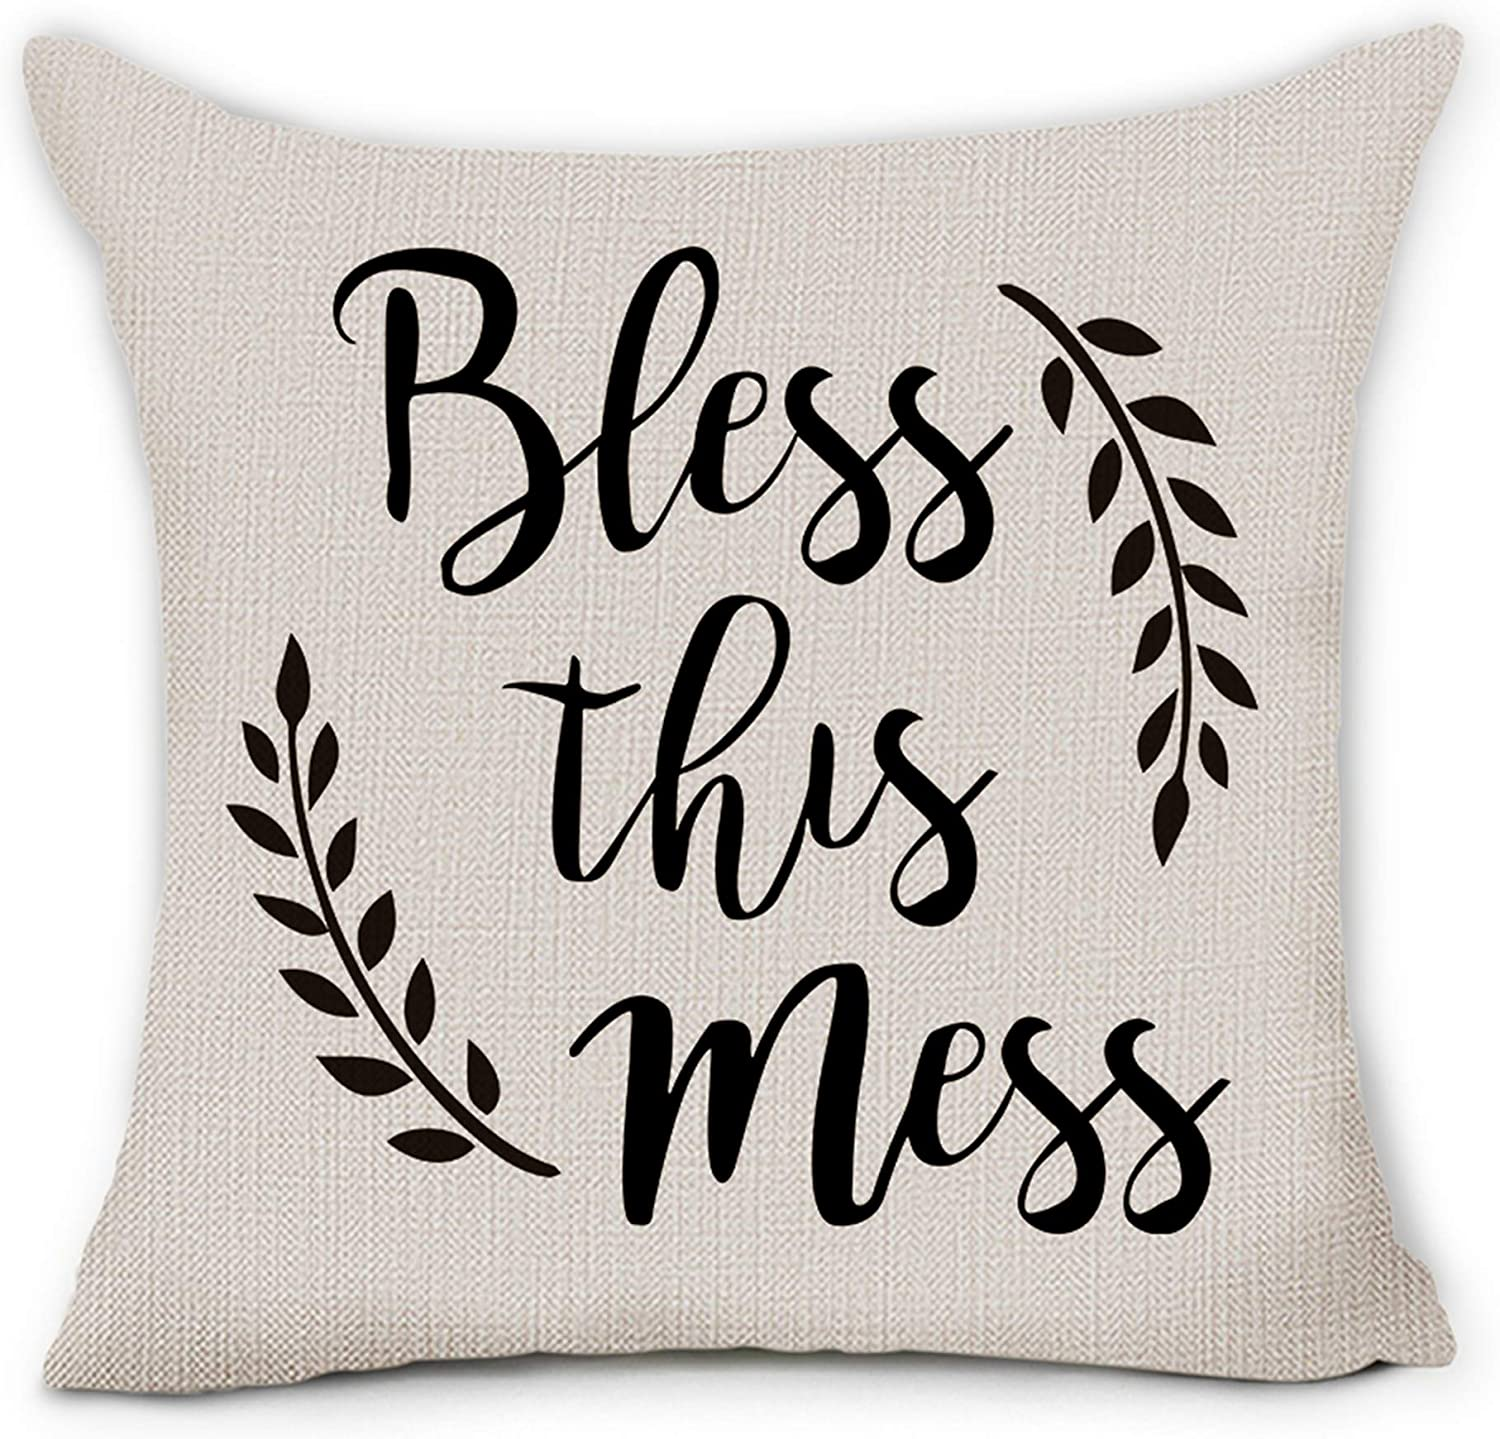 Hexagram Bless This Mess Throw Pillow Covers 18 x 18 Inch Inspirational Words Soft Linen Farmhouse Decorative Pillow Cover Cushion Case for Sofa Bench Couch Living Room Indoor Home Decor